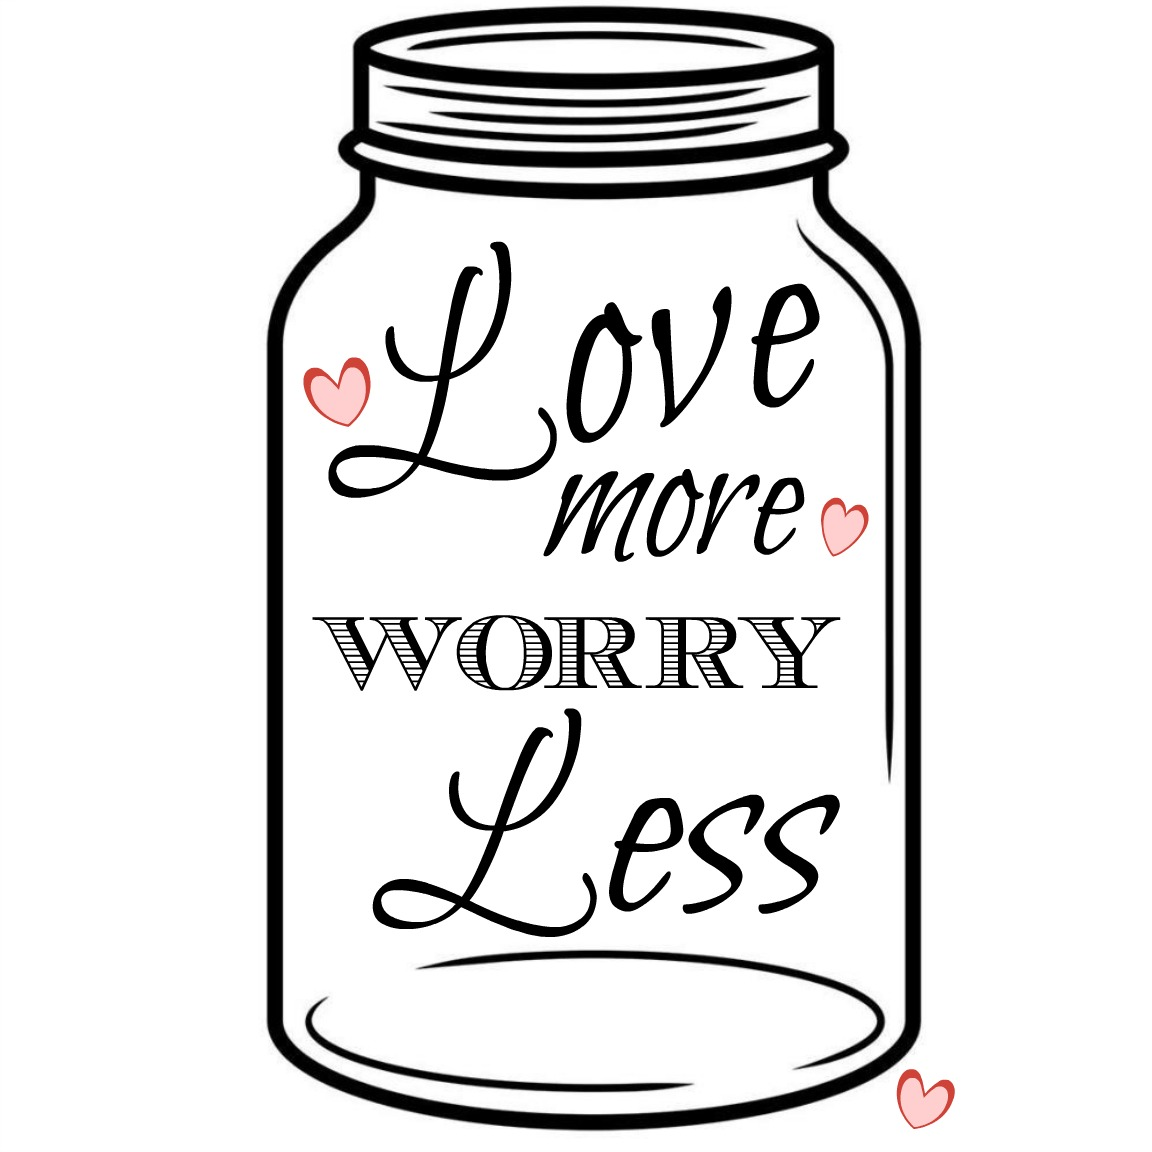 1152x1152 Clear Cut Crystal Designs Love More, Worry Less Wooden Sign